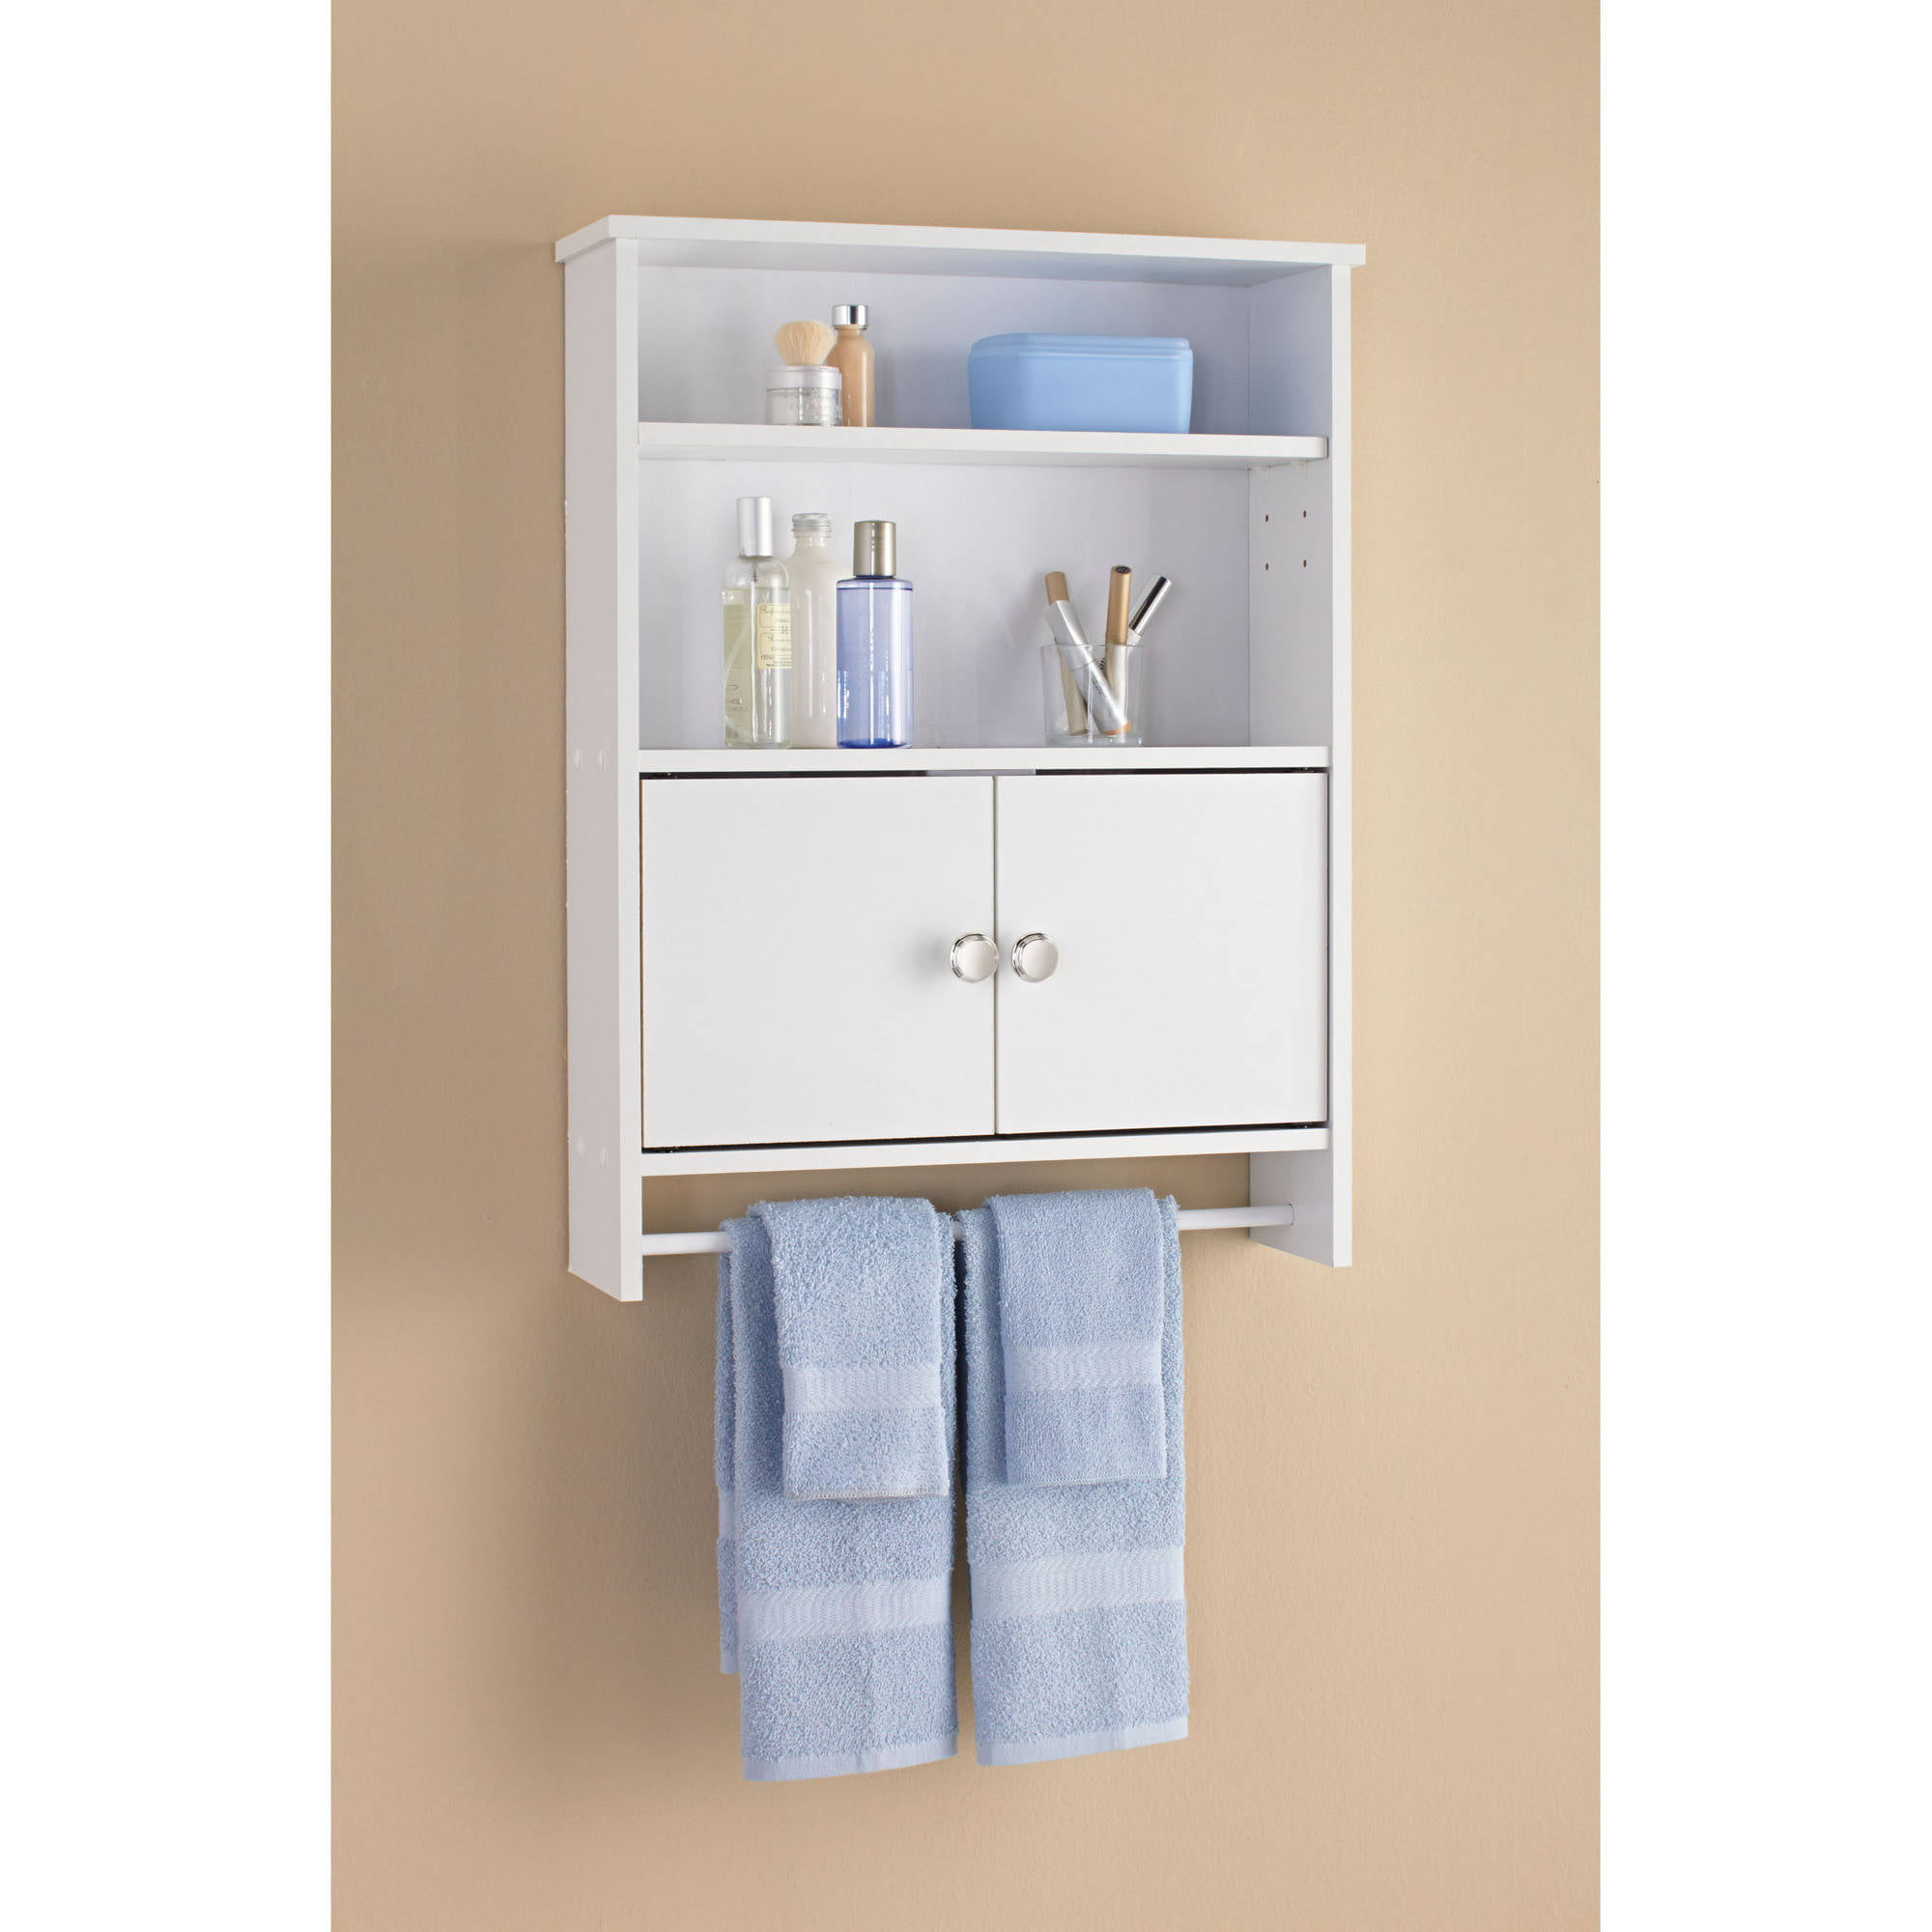 Espresso Bathroom Shelf Space Saver - Walmart.com